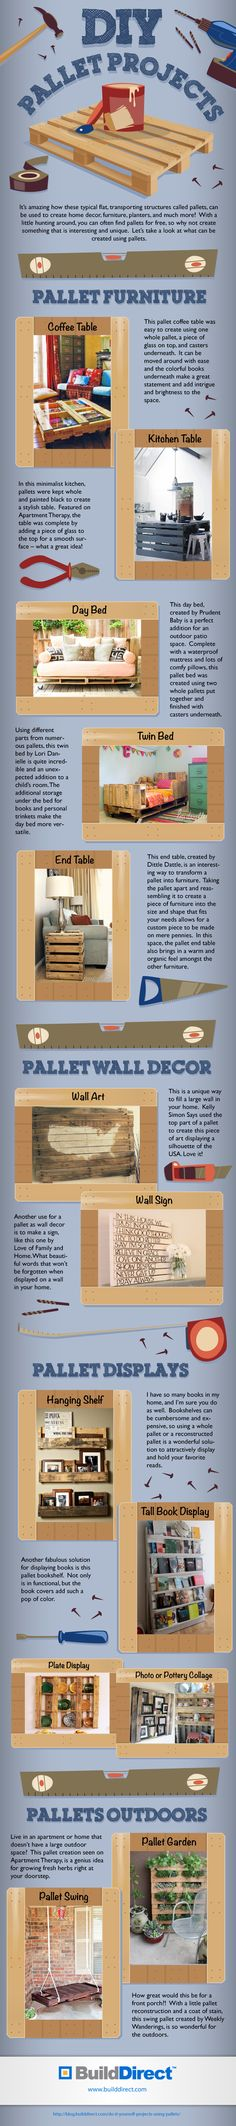 DIY Pallets4 DIY Pallet Projects